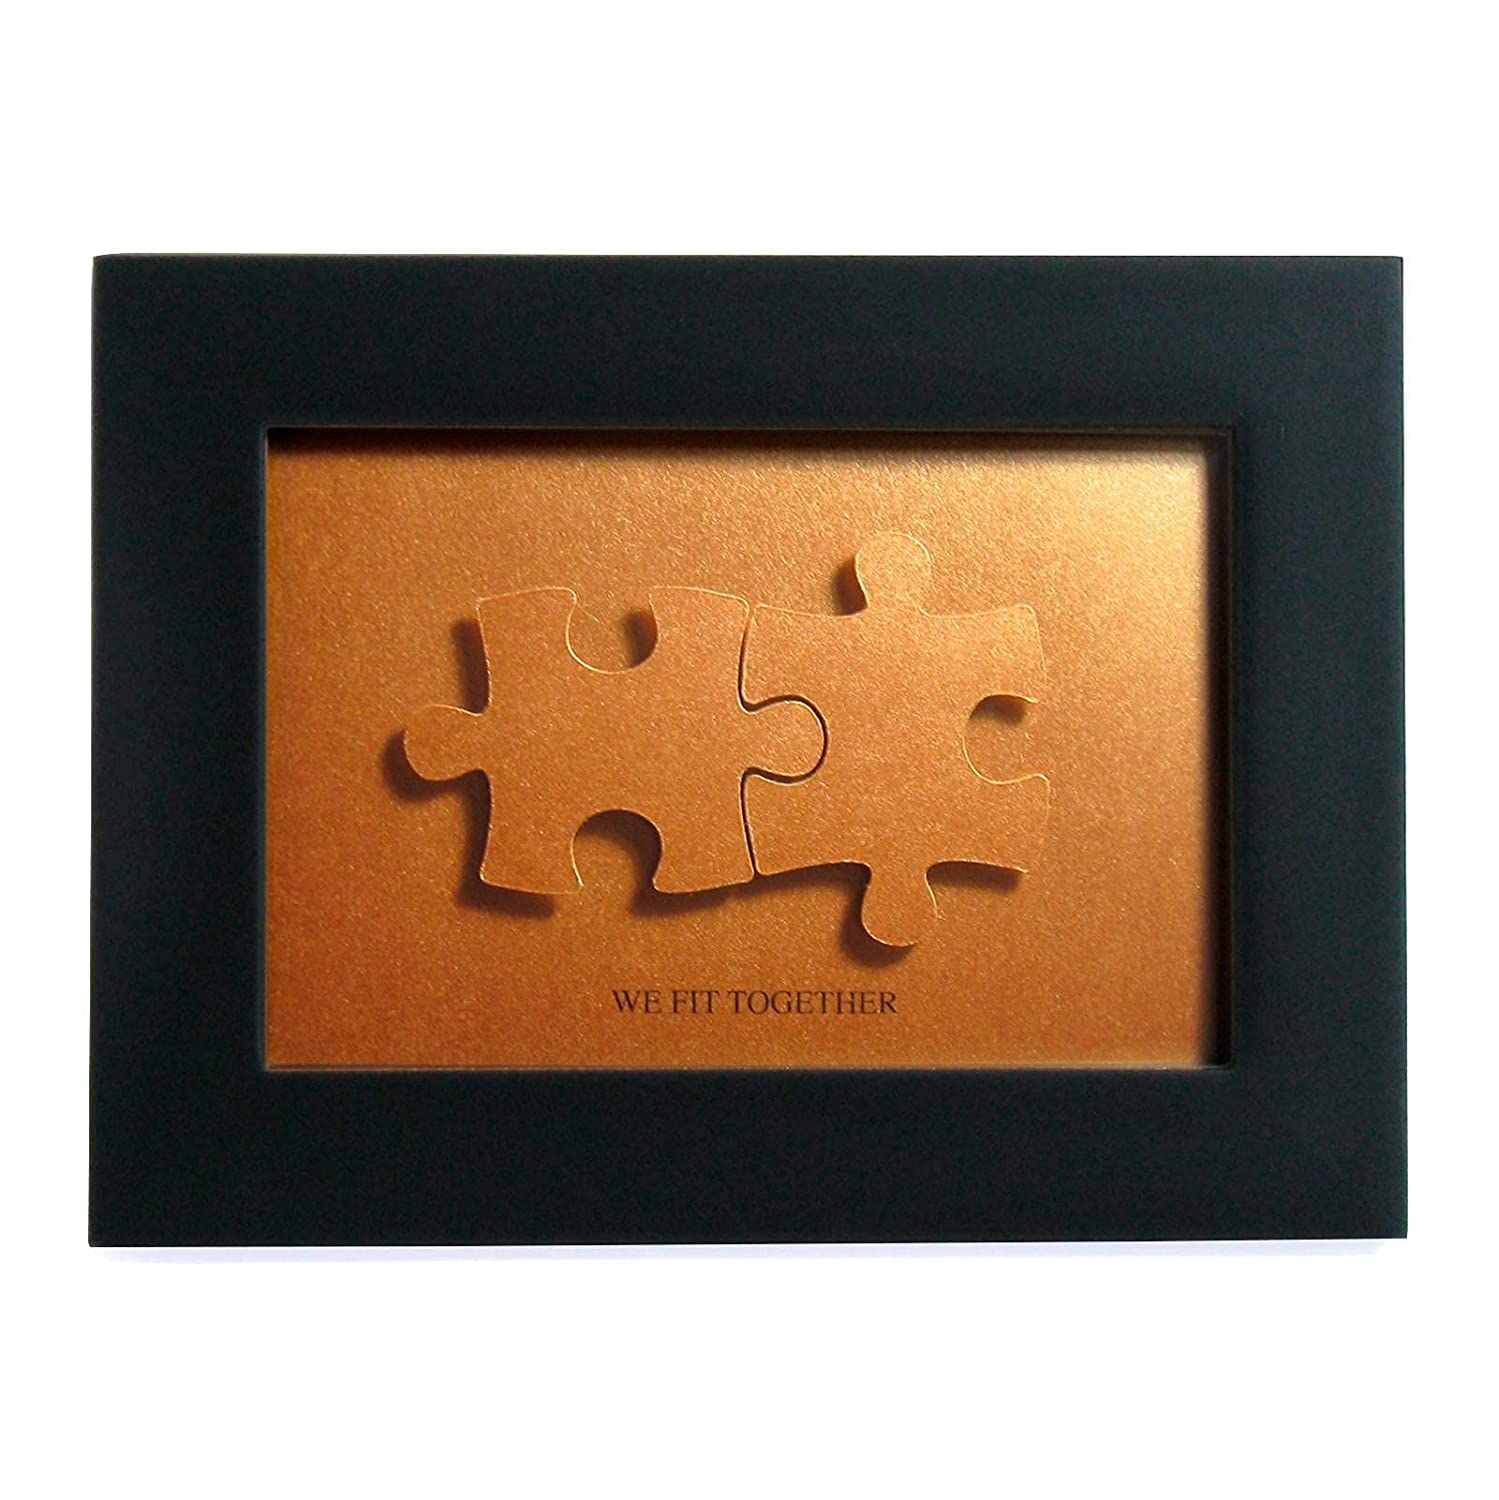 Animer and price revision We fit together Puzzle Paper Cut Art Creative for Gift Spasm price 8th the -